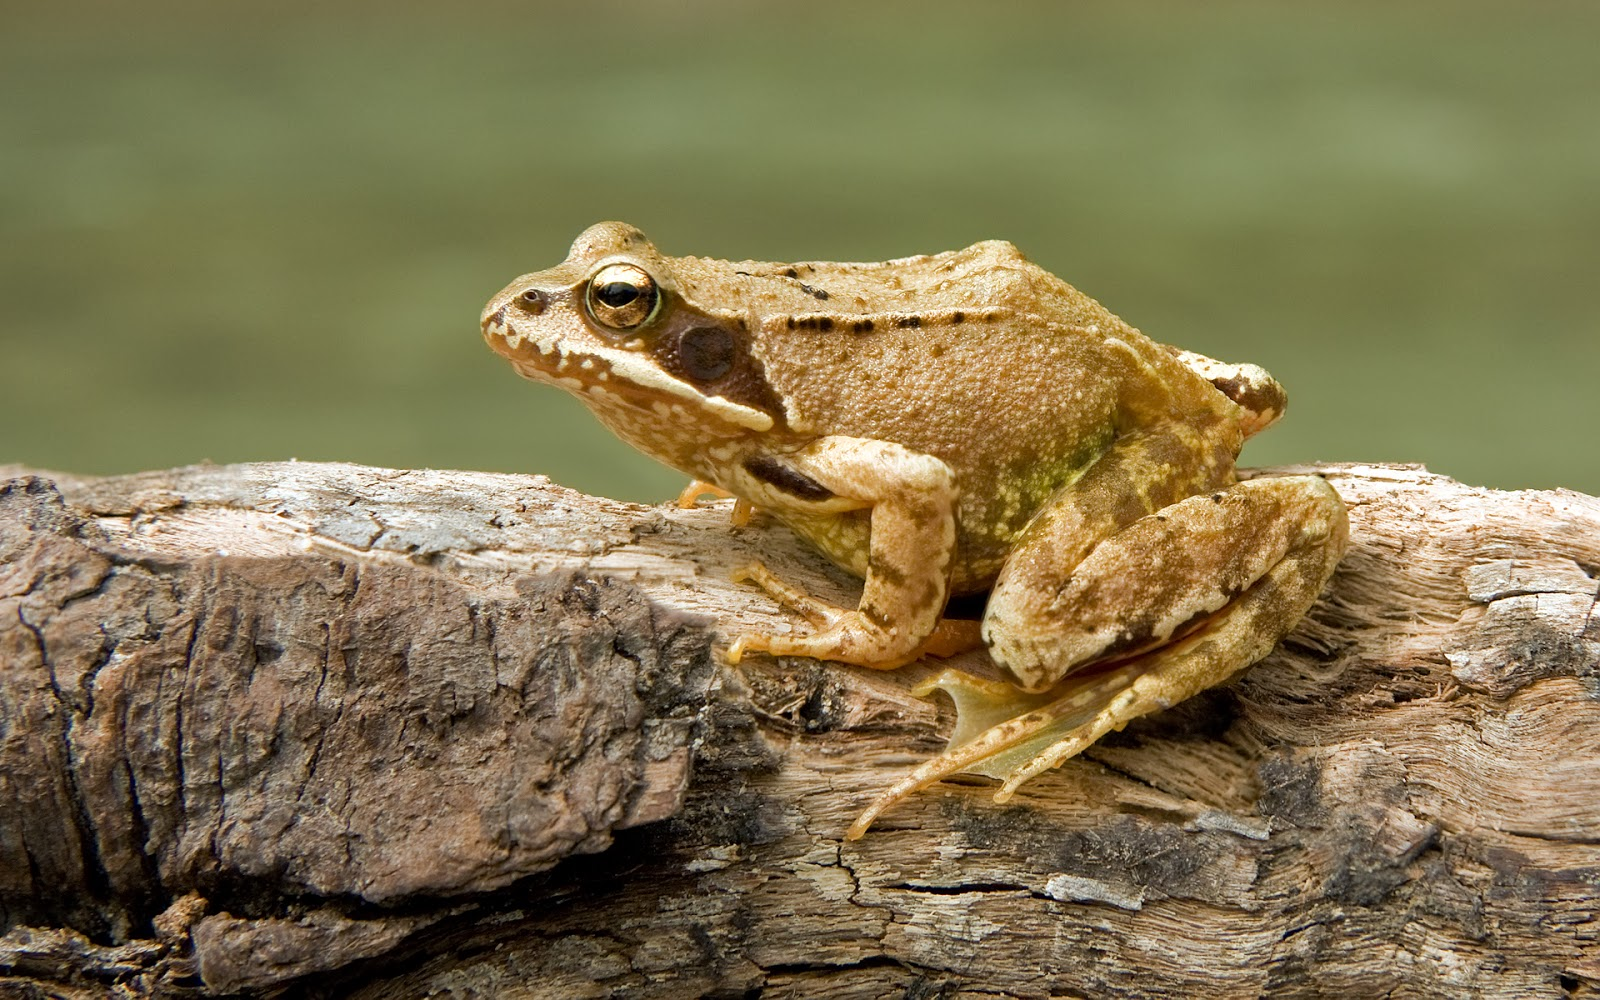 Amphibians: European Common Frog Rana temporaria